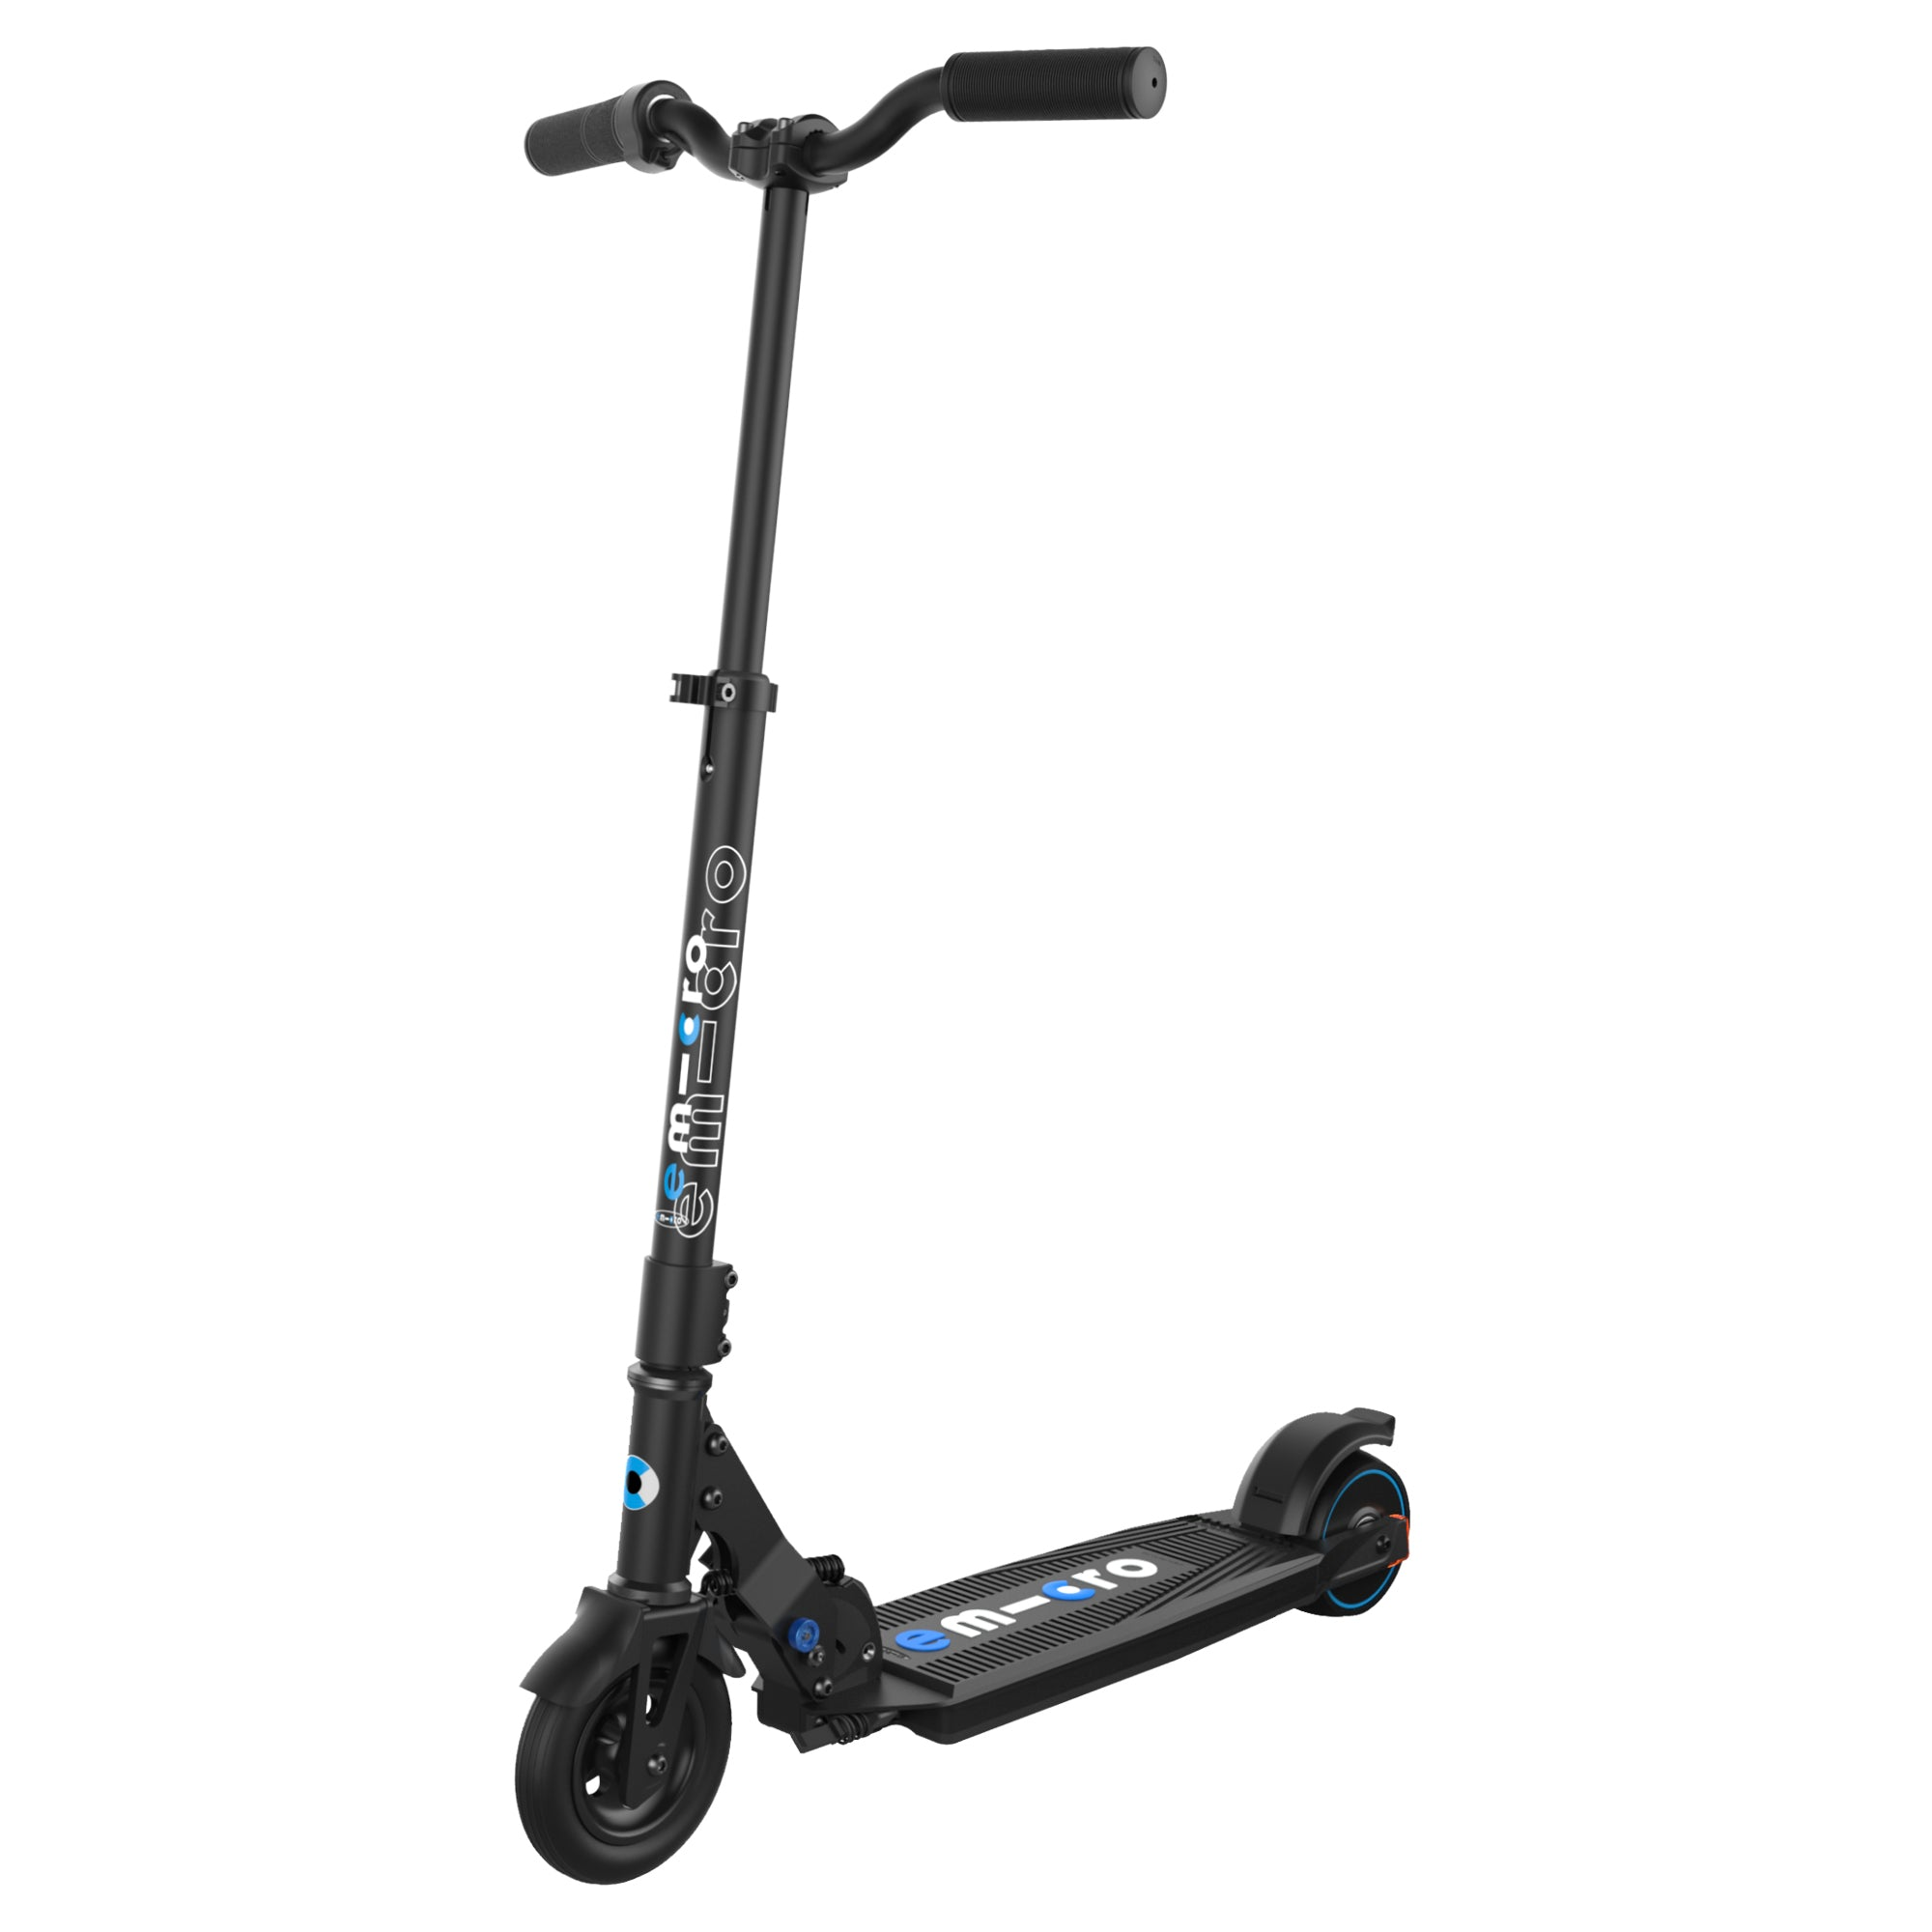 Micro Falcon X3 Super Lightweight Electric Scooter - Electra-Zoom